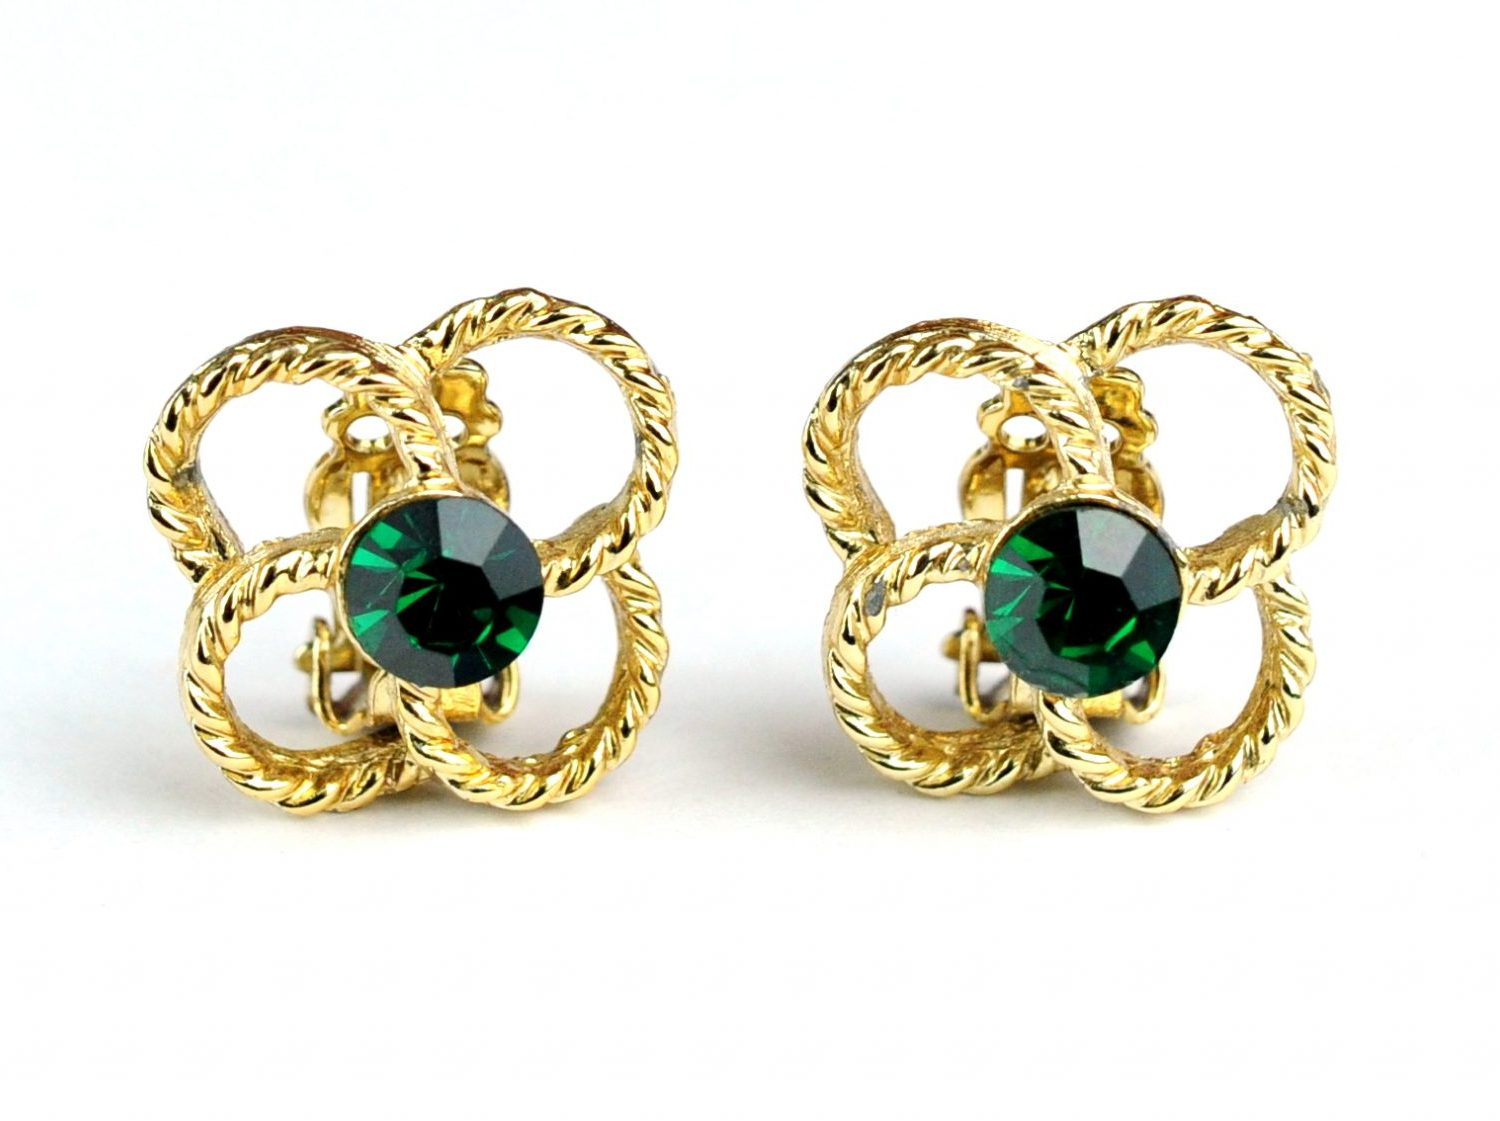 Green and Gold Twisted Rope Clip On Earrings